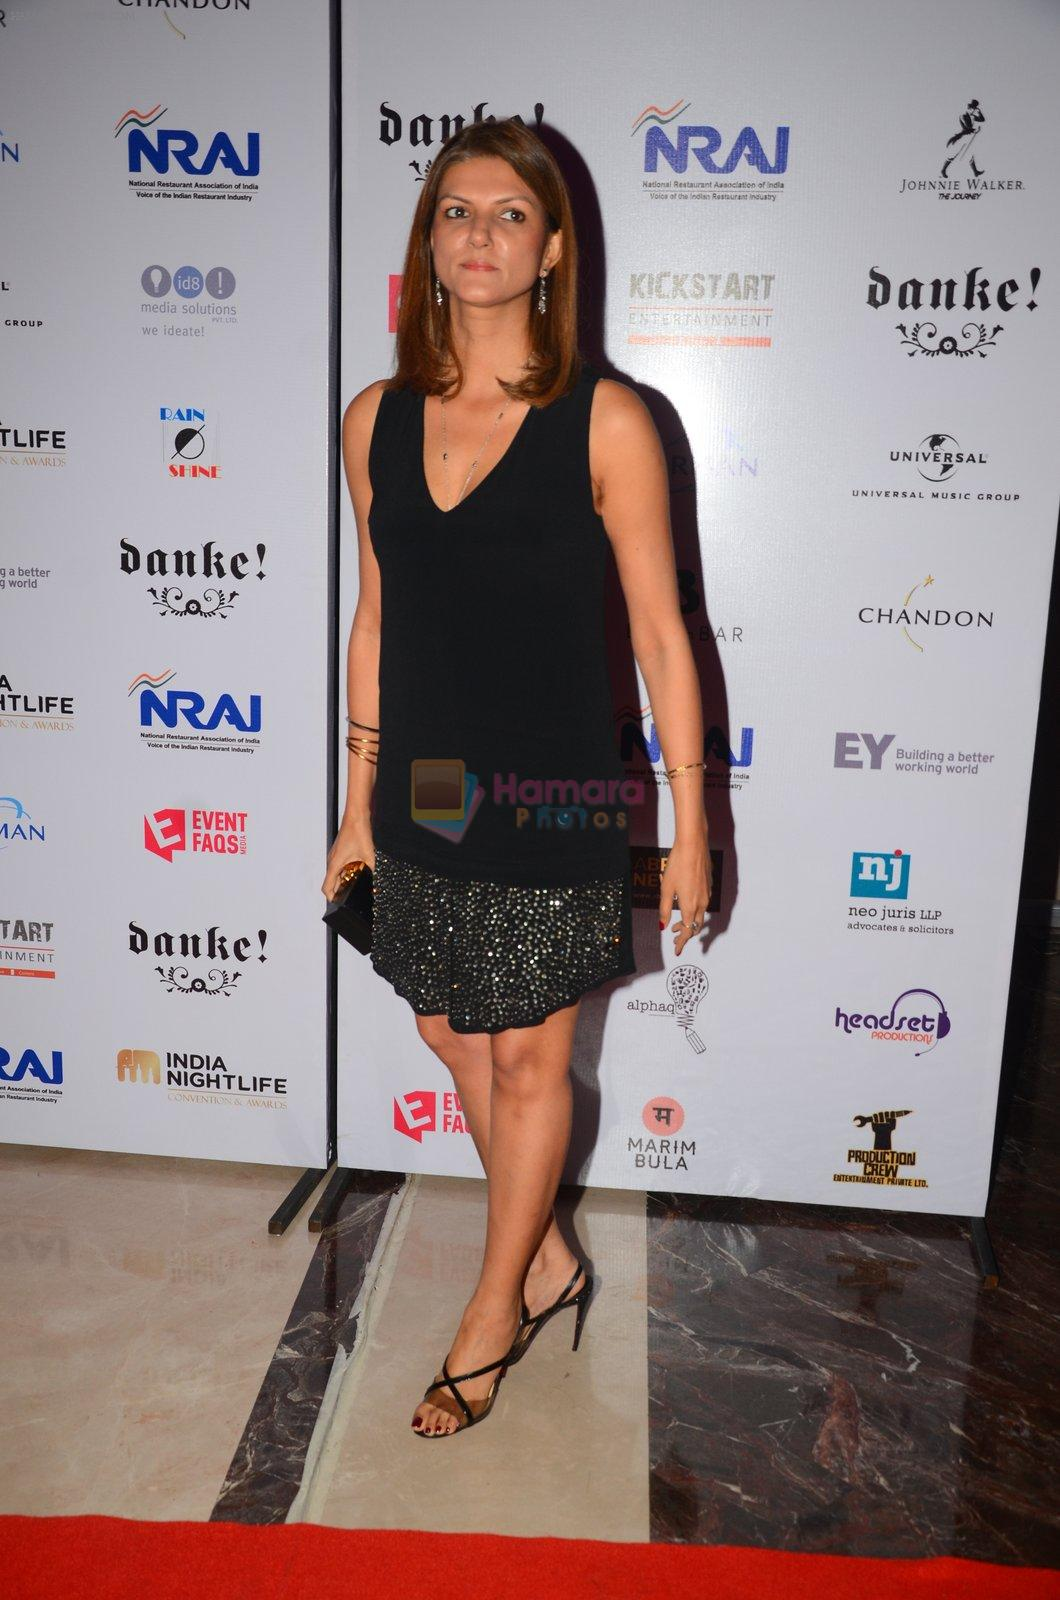 Nandita Mahtani at Indian Nightlife convention on 26th Sept 2016